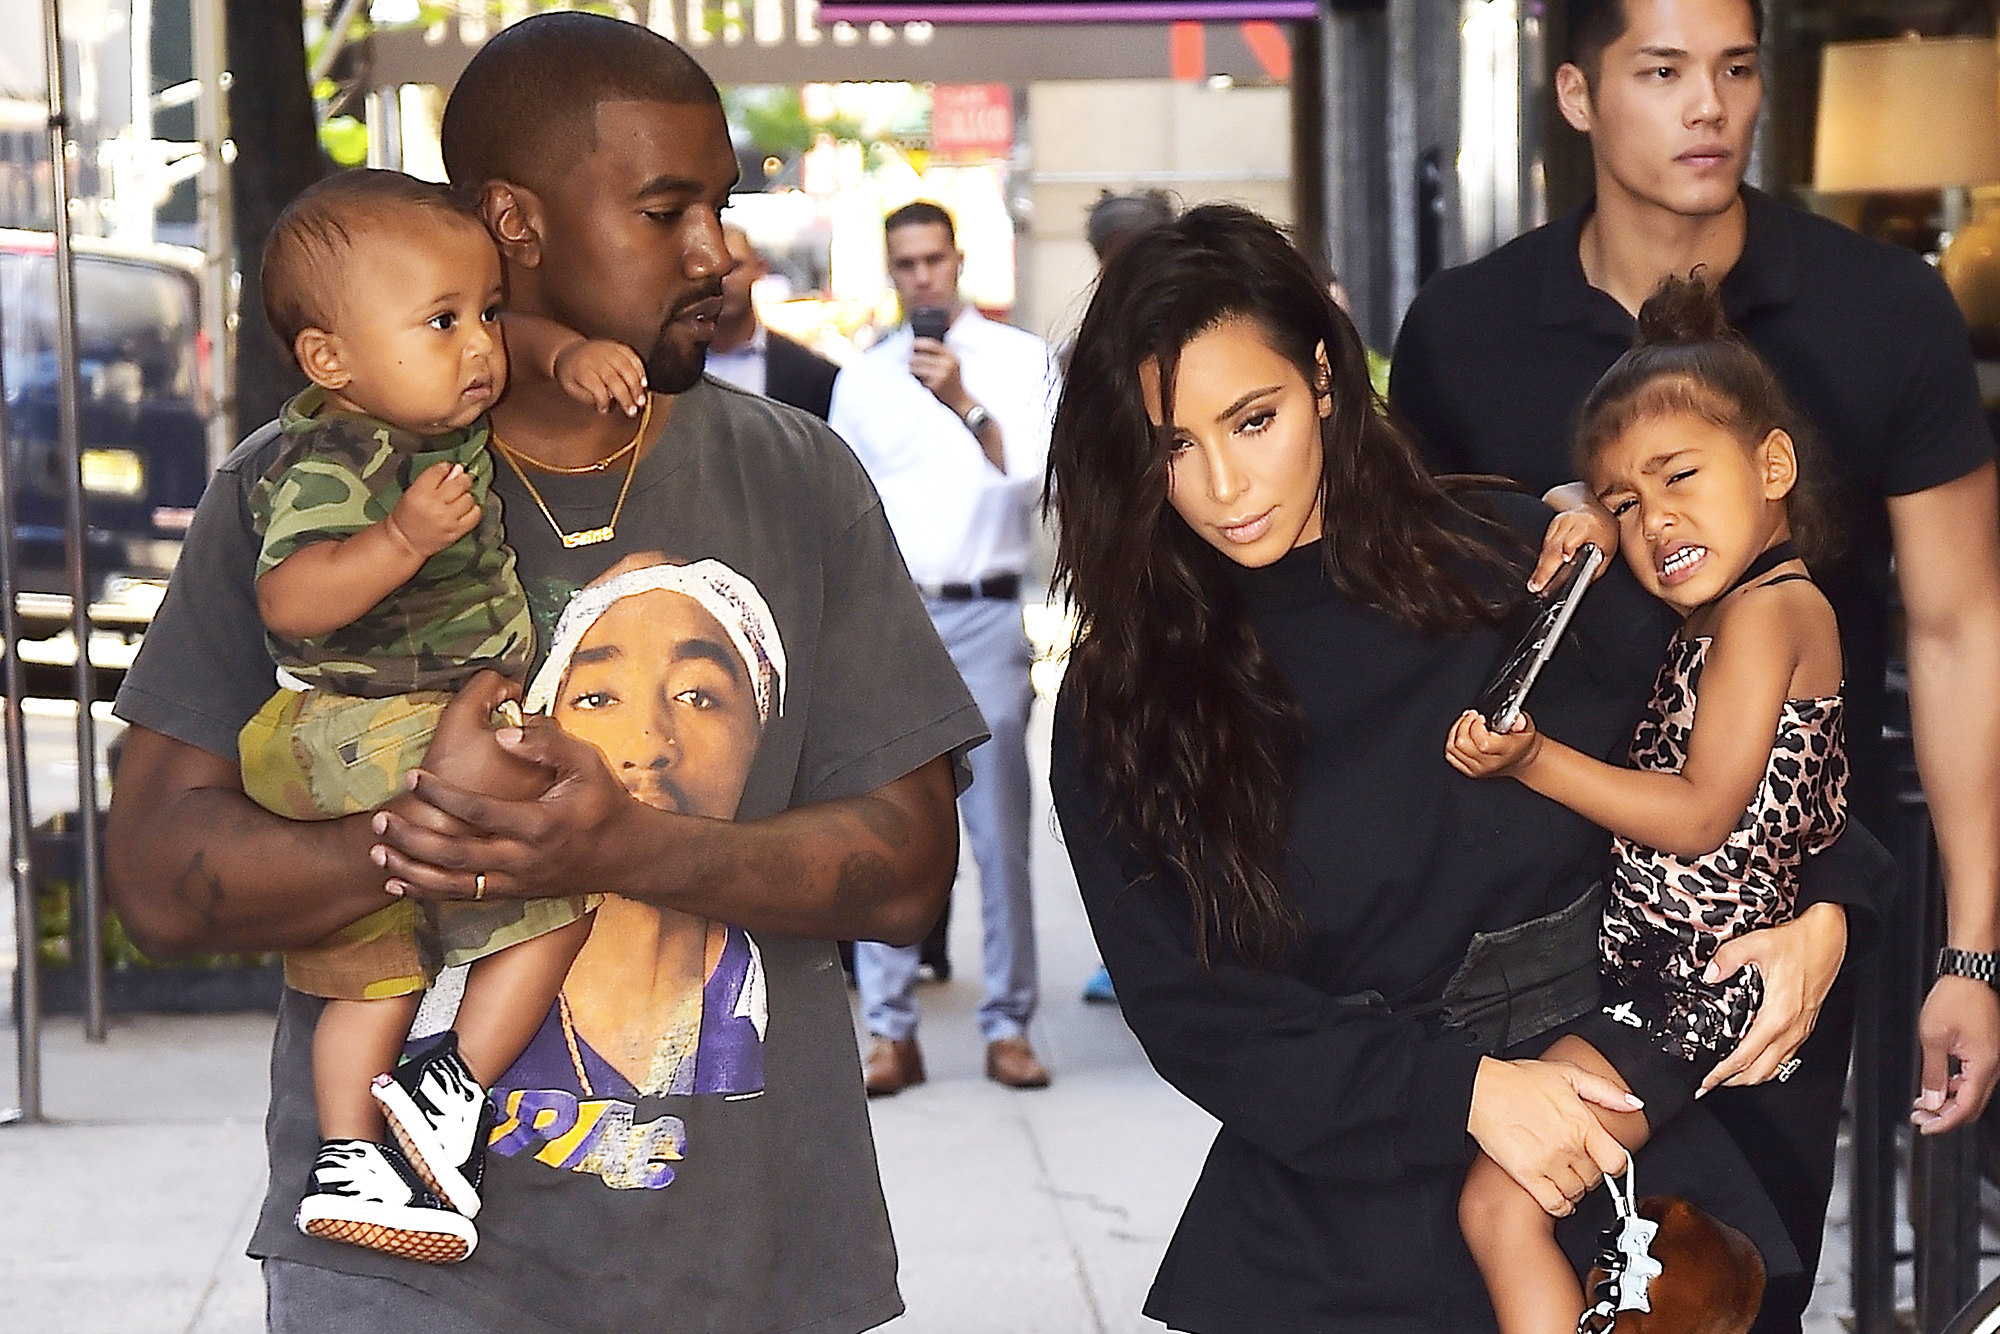 Kanye West and Kim Kardashian, with Saint West, left, and North West, right, in New York City, on Aug. 29, 2016.